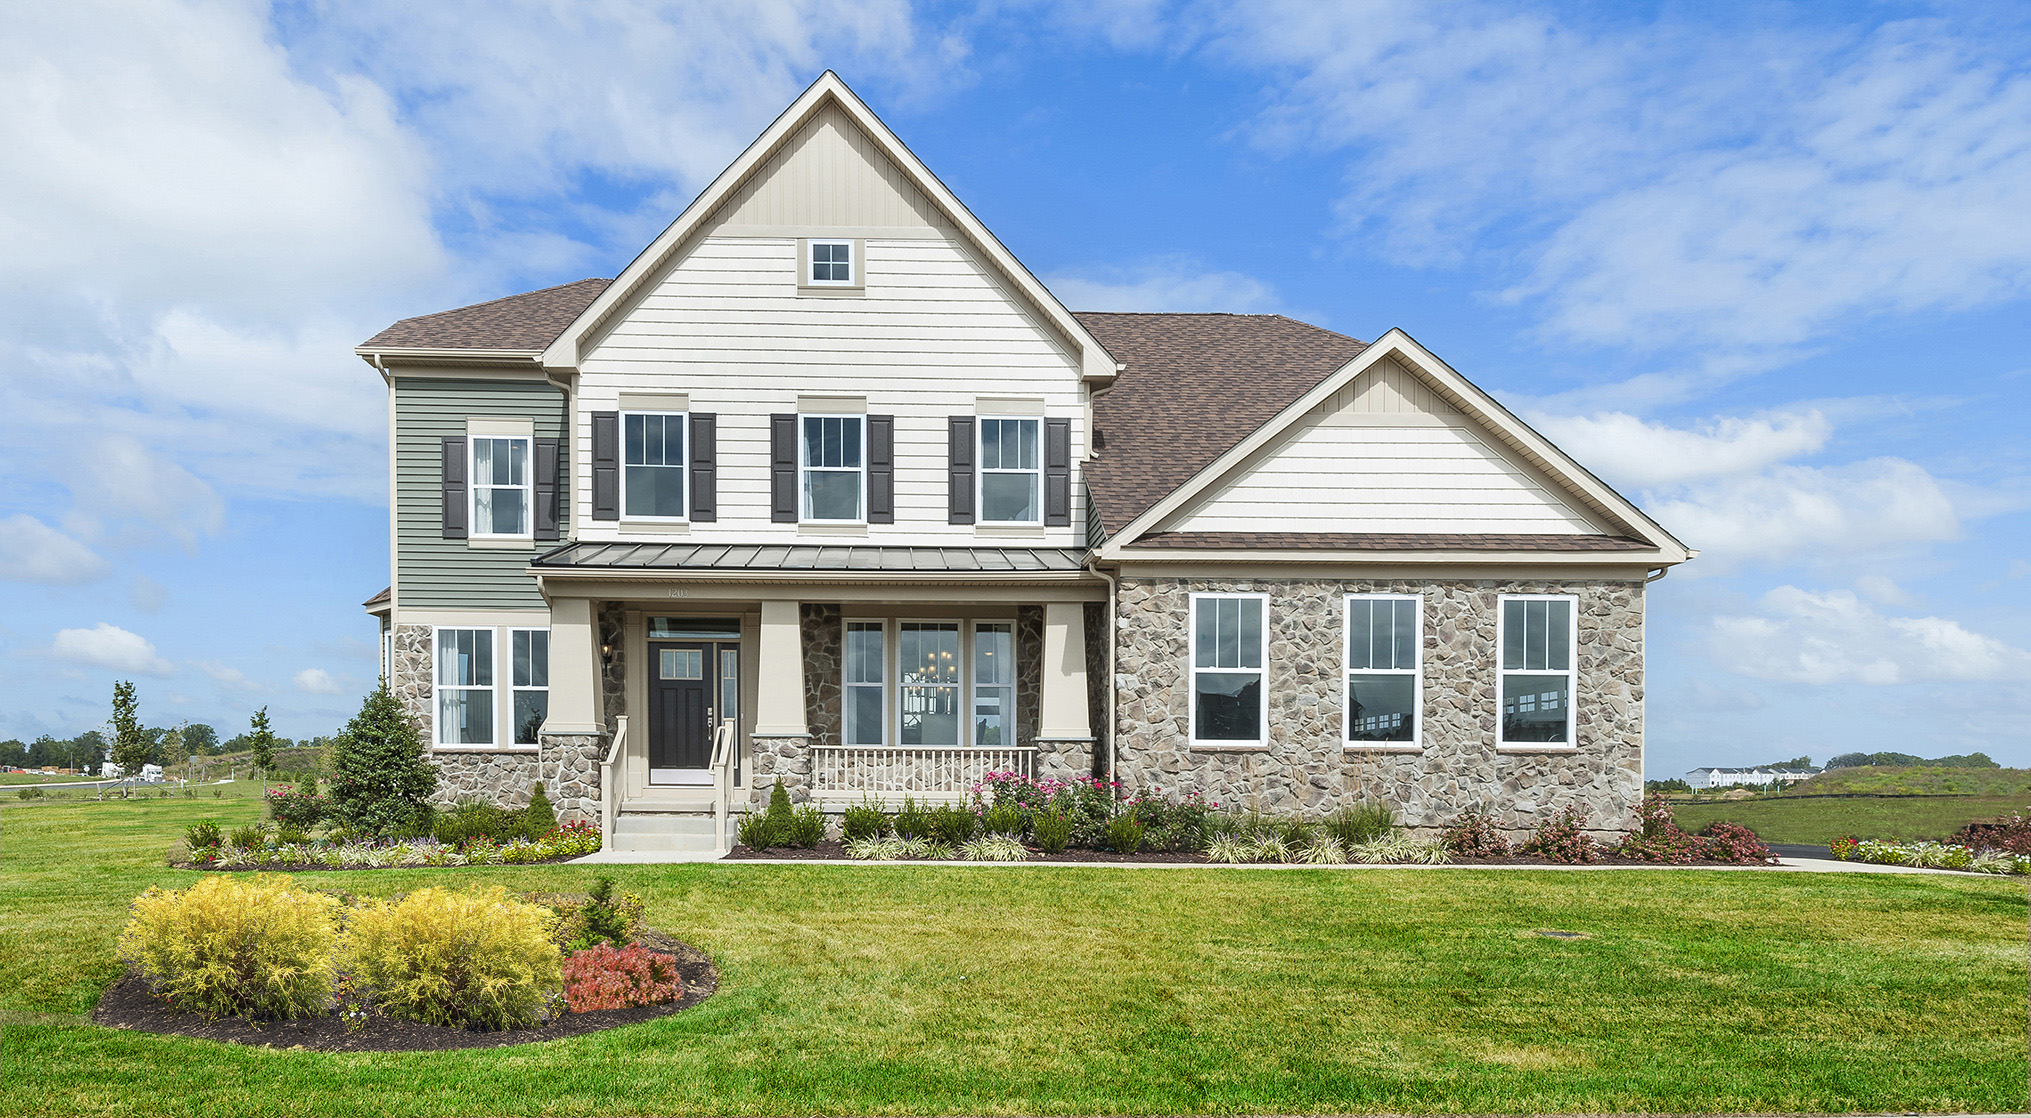 How to Find the Best Home Builder in Delaware - The Essential Checklist